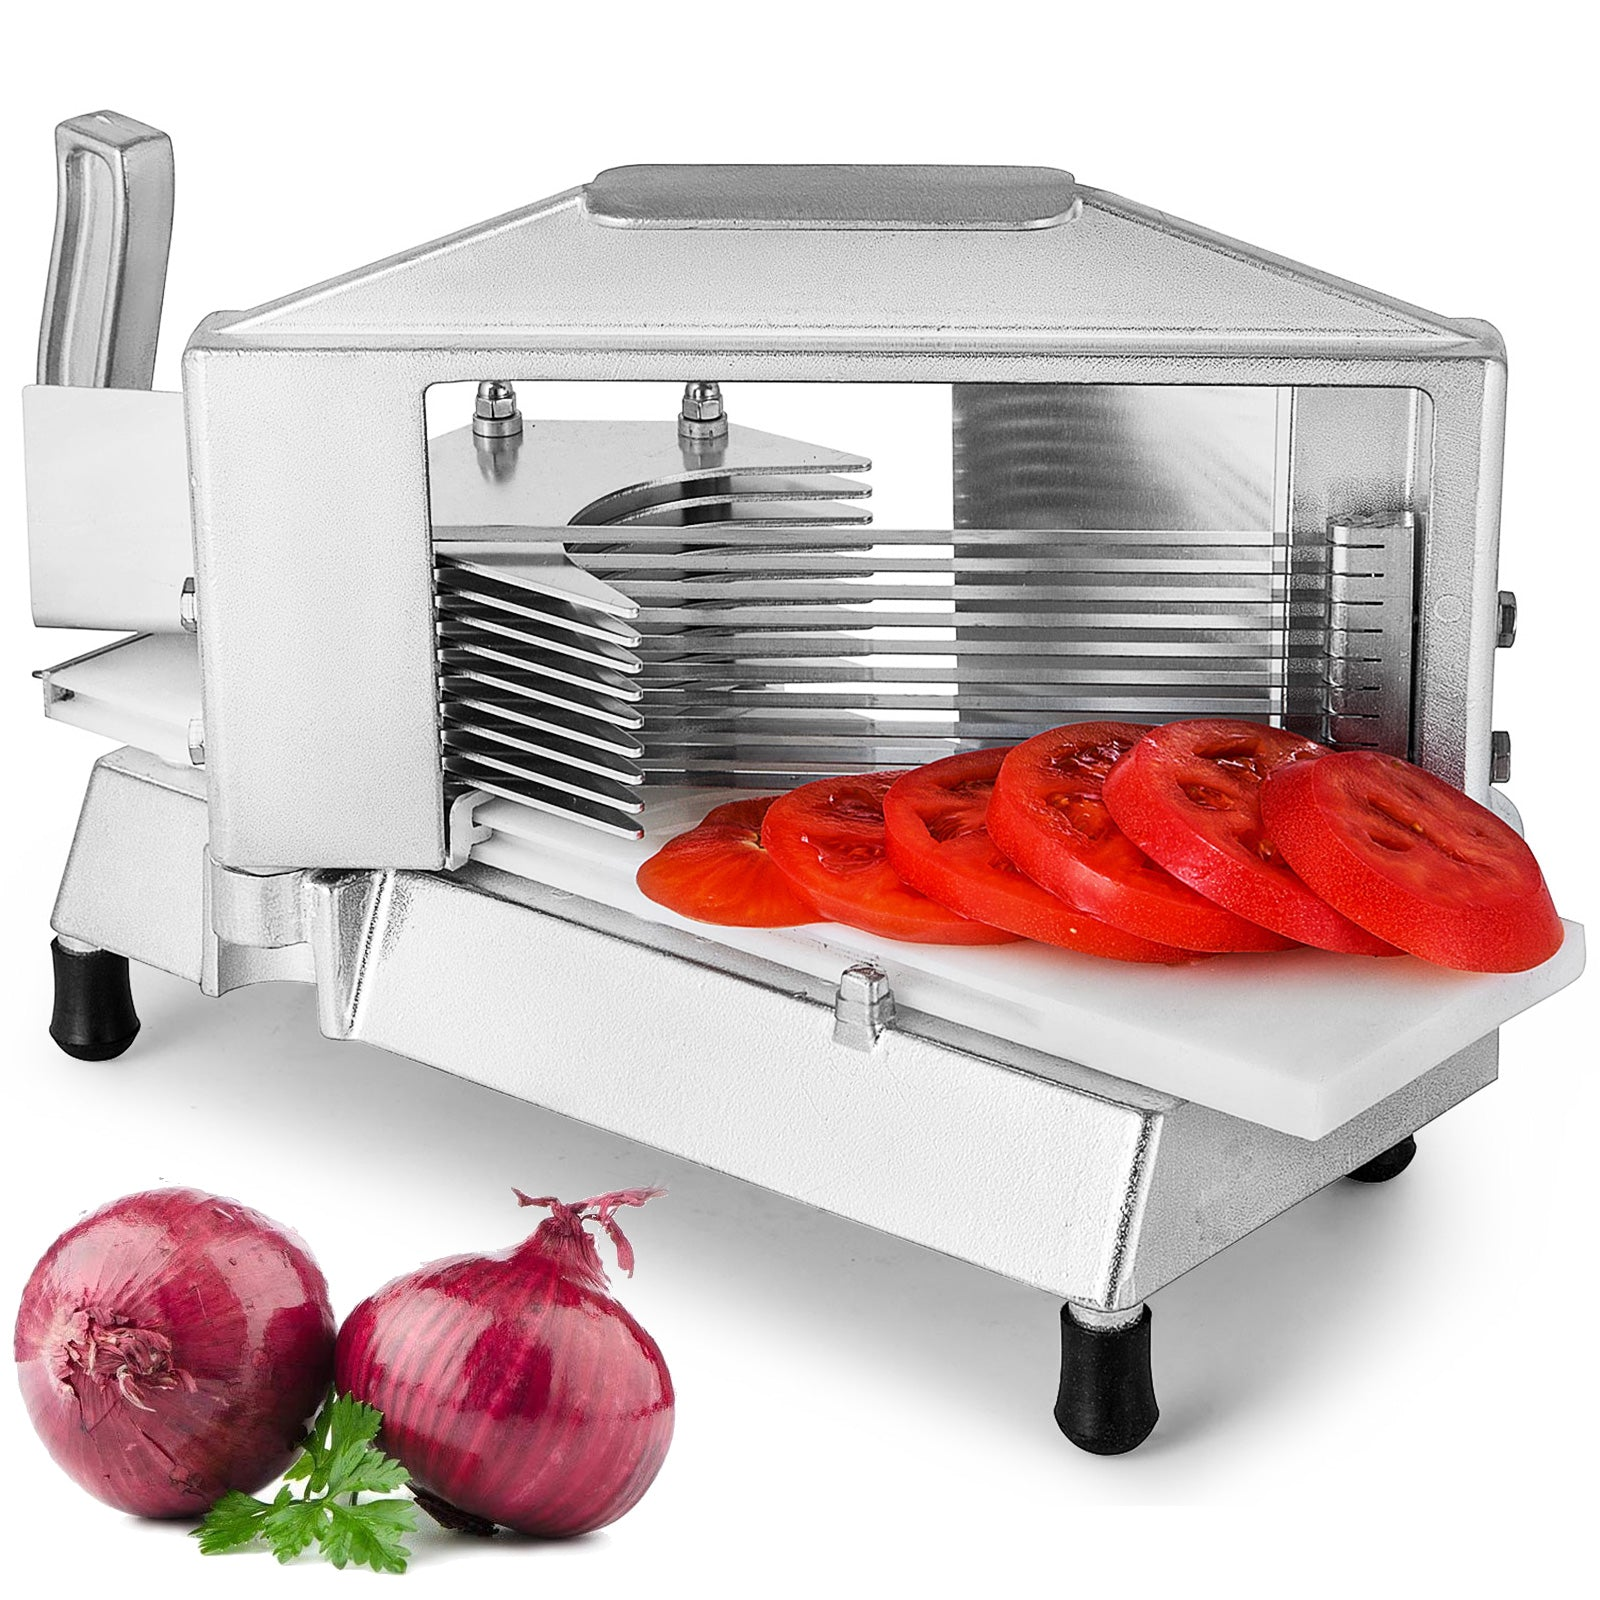 "Commercial Tomato Slicer Fruit Cutting Machine 1/4"" Stainless Steel Blade Restau"